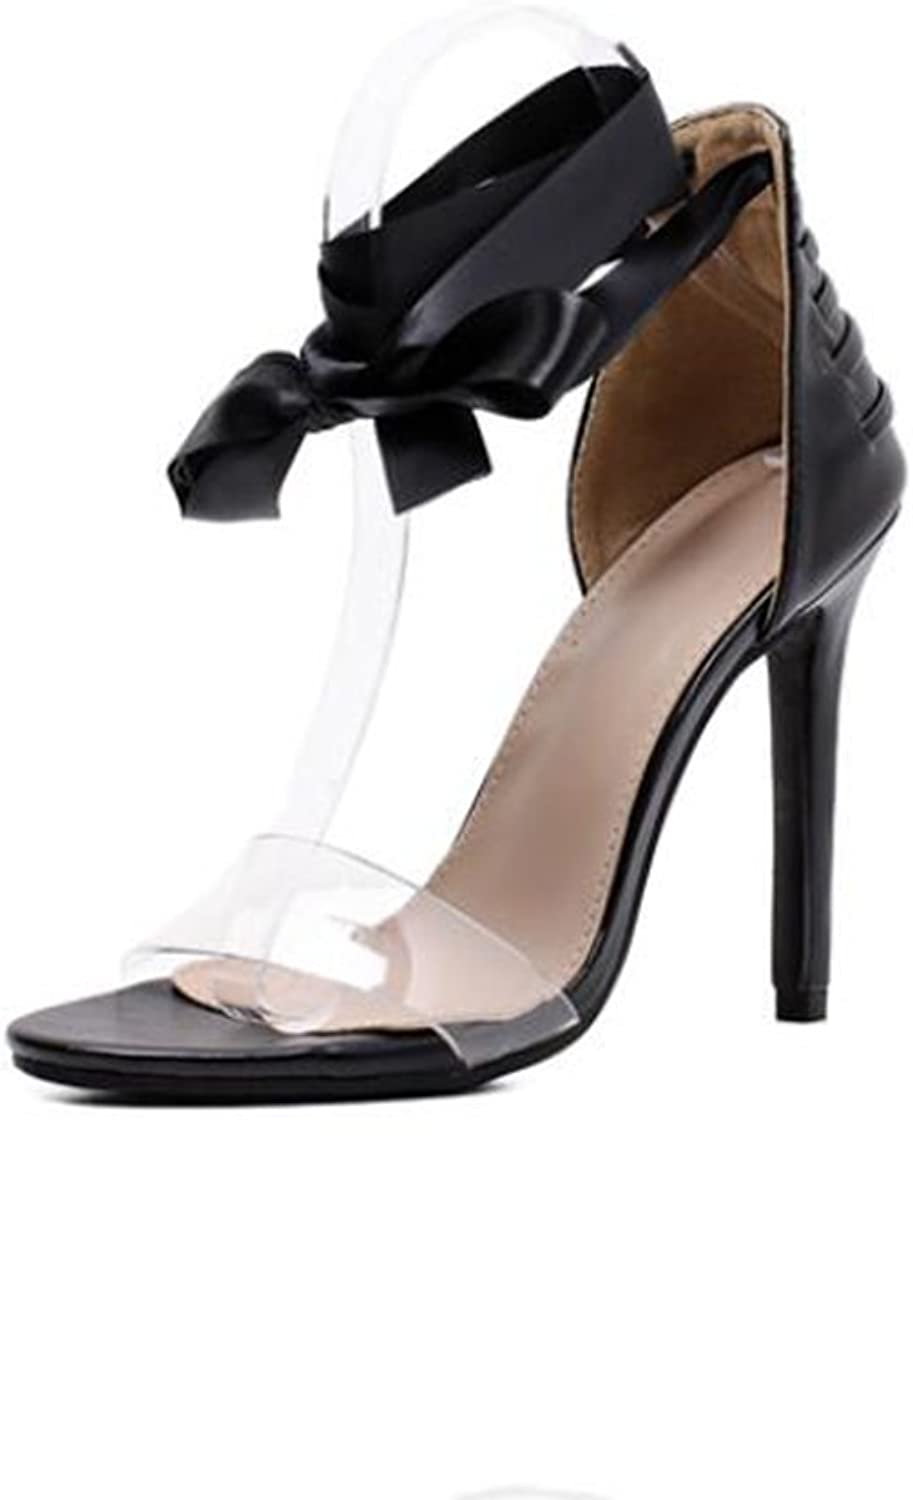 Europe and The United States Strap Sandals Transparent Belt High Heel Women's shoes,Black,38